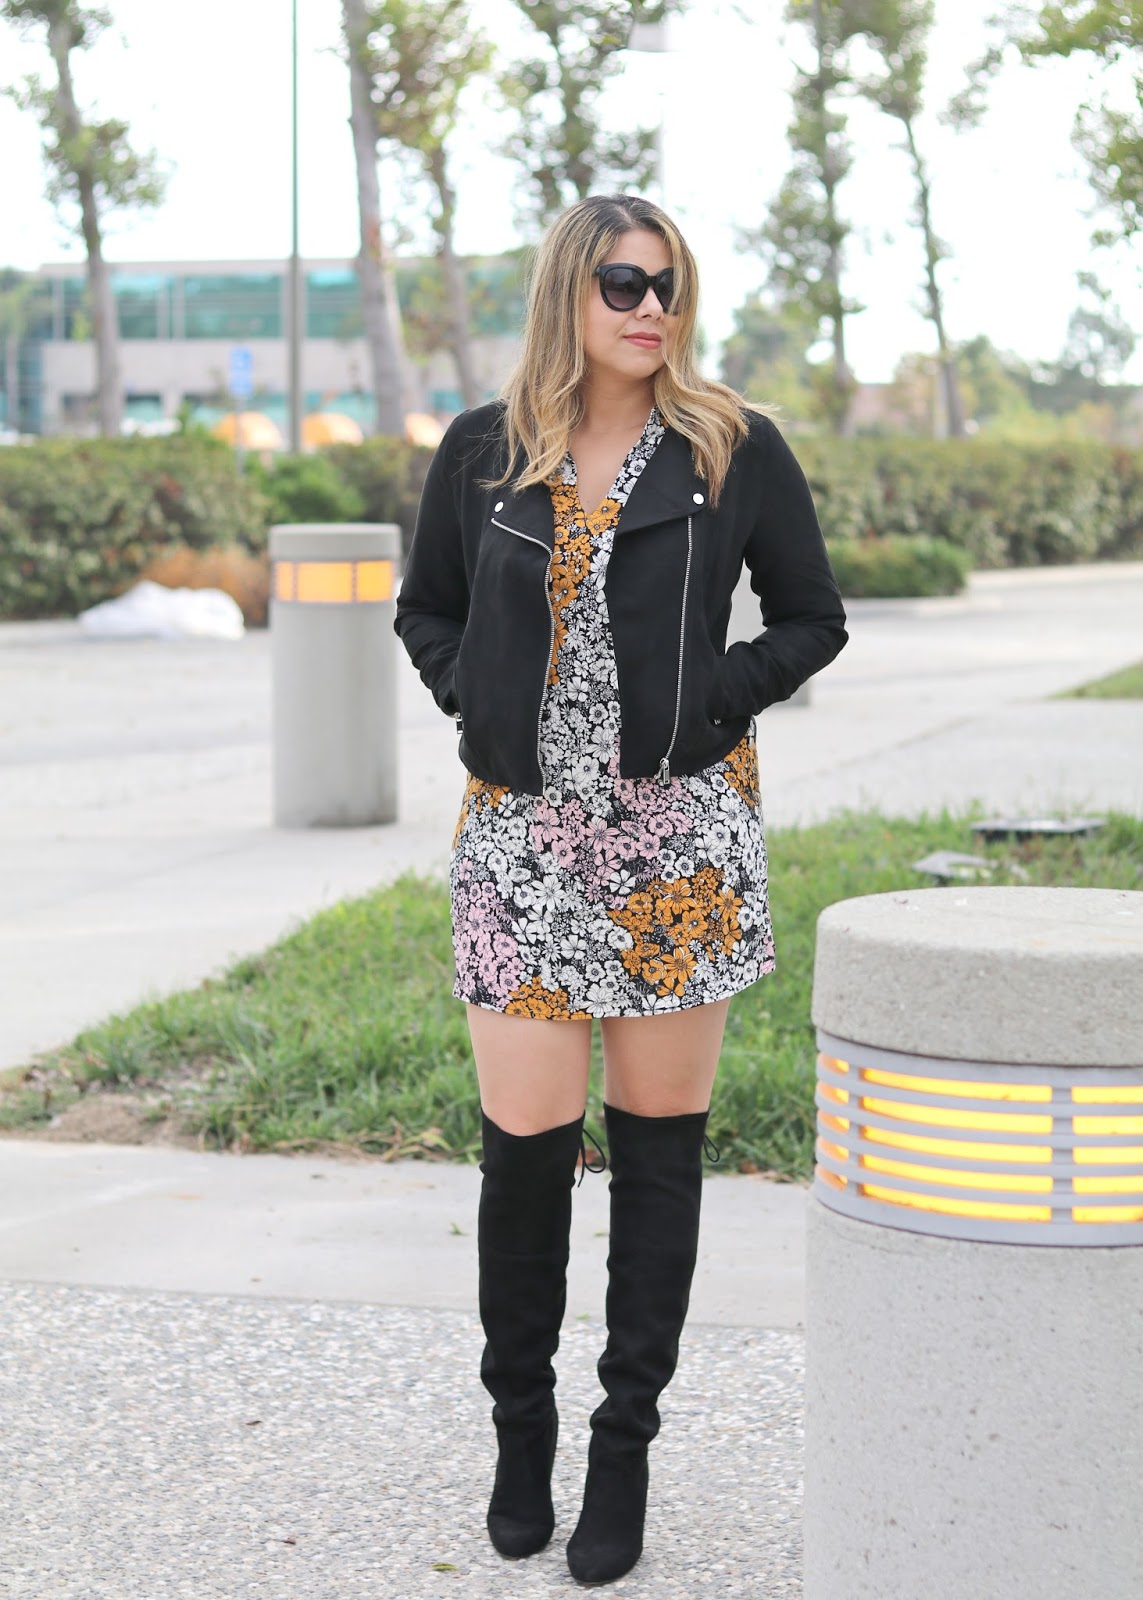 Moto Jacket with Over the Knee Boots, how to wear over the knee boots, San Diego fashion blogger, san diego style blogger